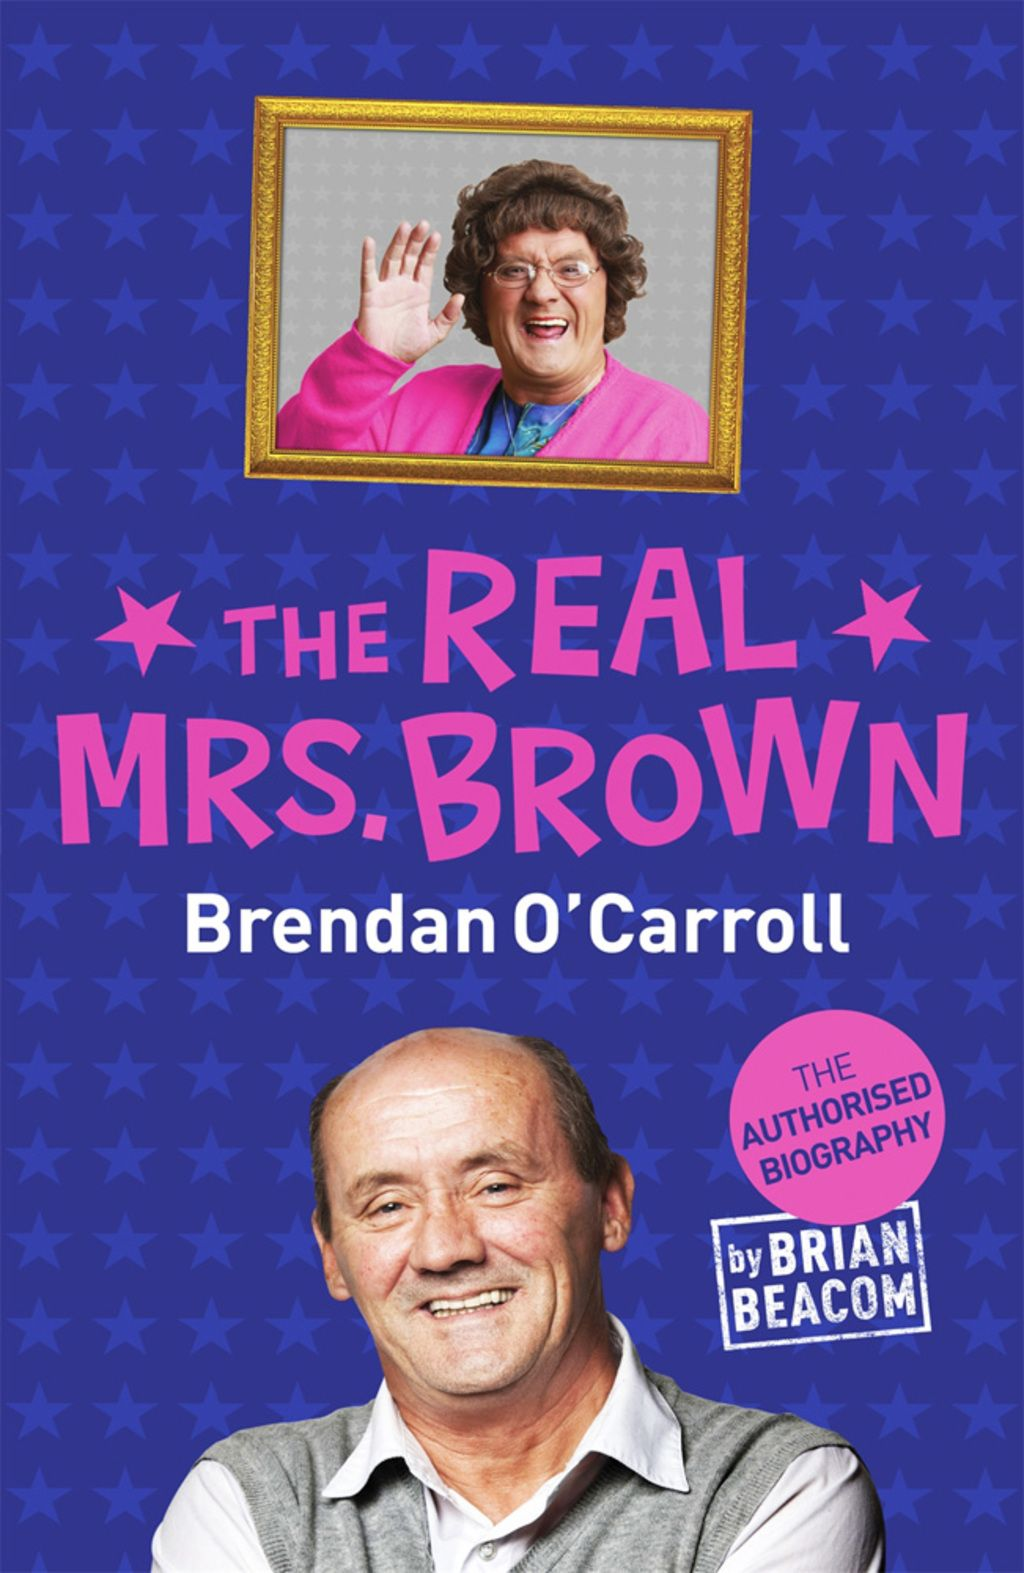 The Real Mrs Brown Ebook Mrs Browns Boys Comedy Tv Books